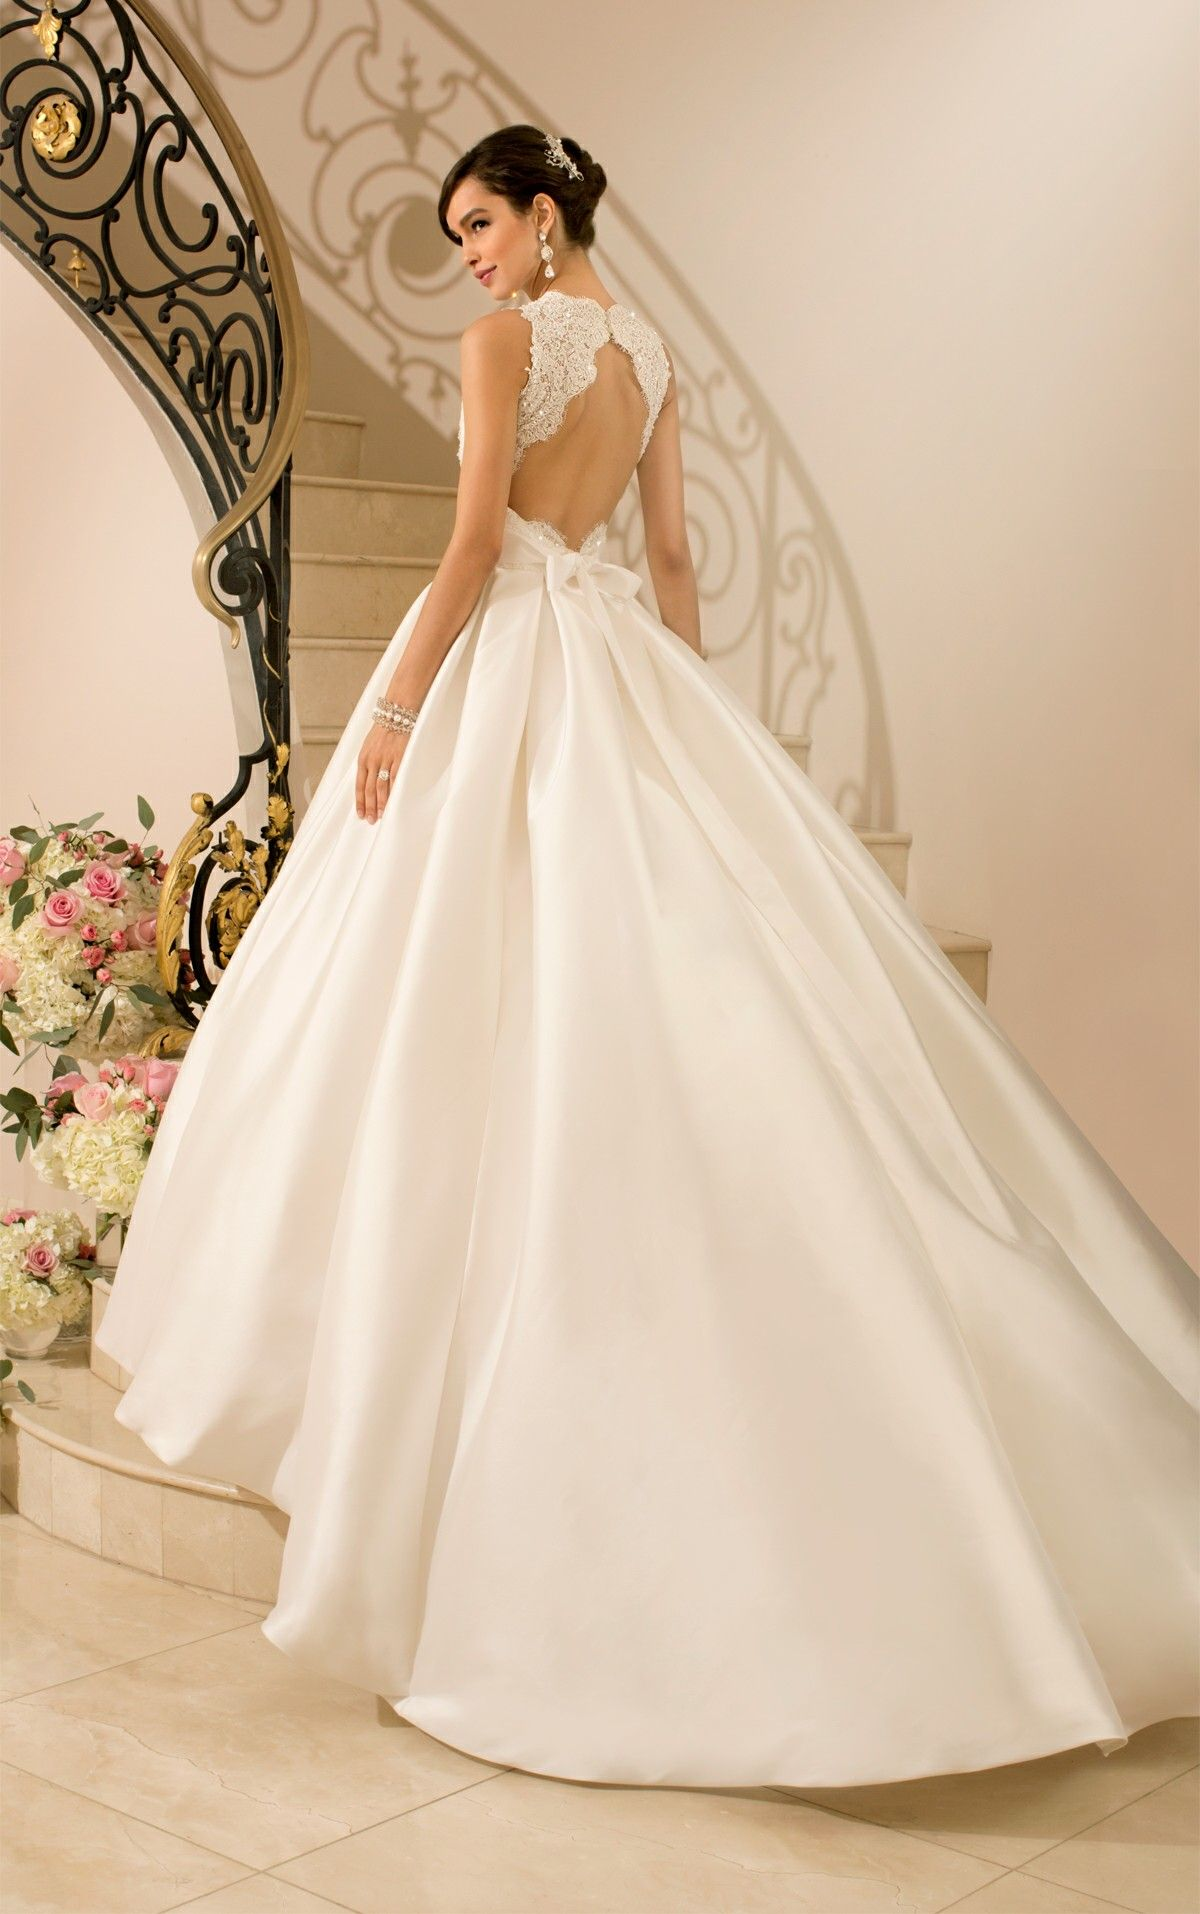 Belles wedding dress  Pin by EvaHelena on Princess  Pinterest  Princess and Gowns